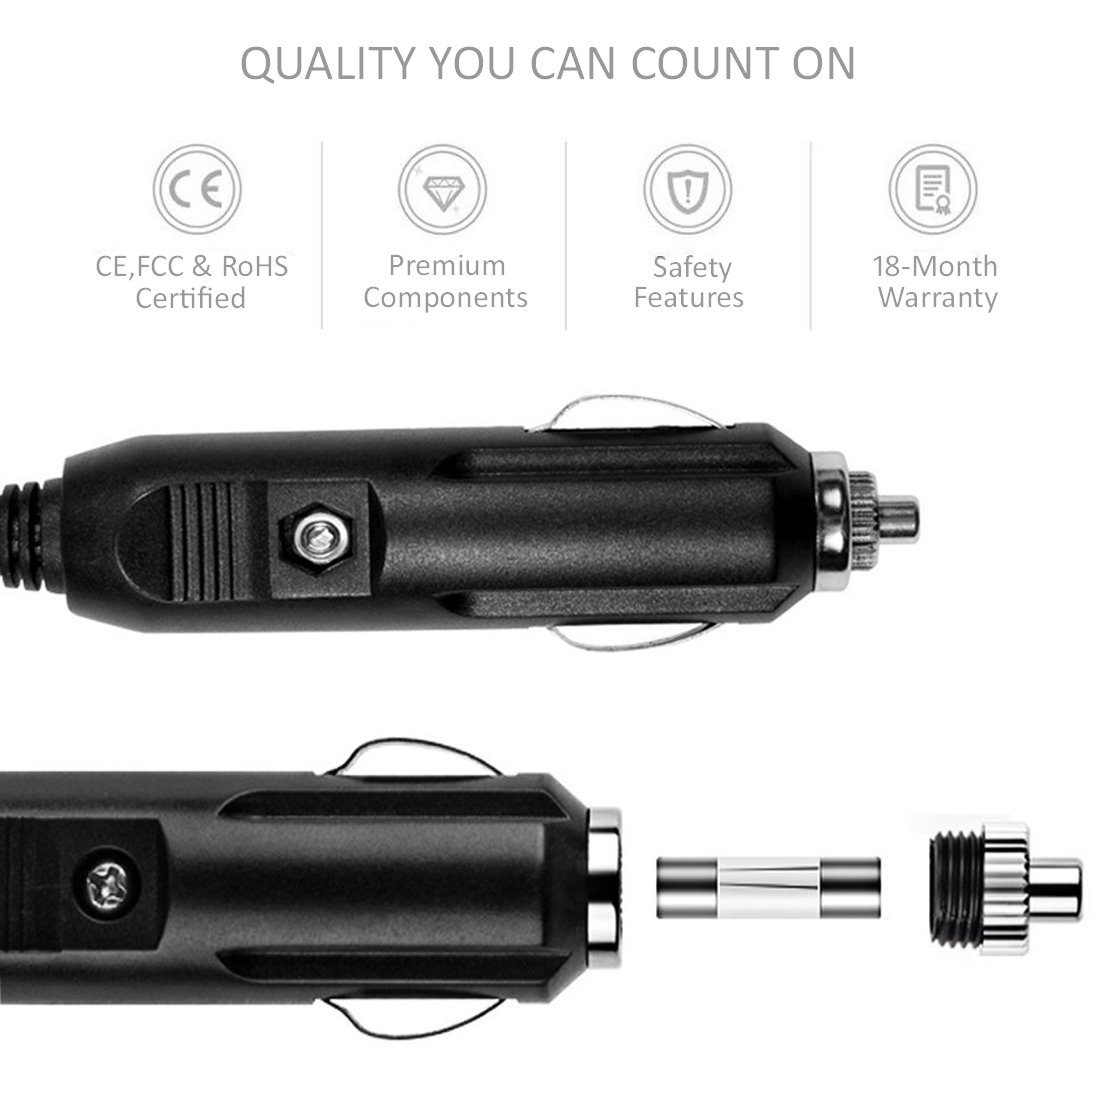 Car Charger Adapter KPPOL 24W 4.8A Dual Smart USB Ports Phone Charger for Mobile Devices Phone X // 8//7 // Plus Pad Pro//Air 2 // Mini Galaxy Note8 // S8 // S8+ and More KPPOL POWER KP-24WB